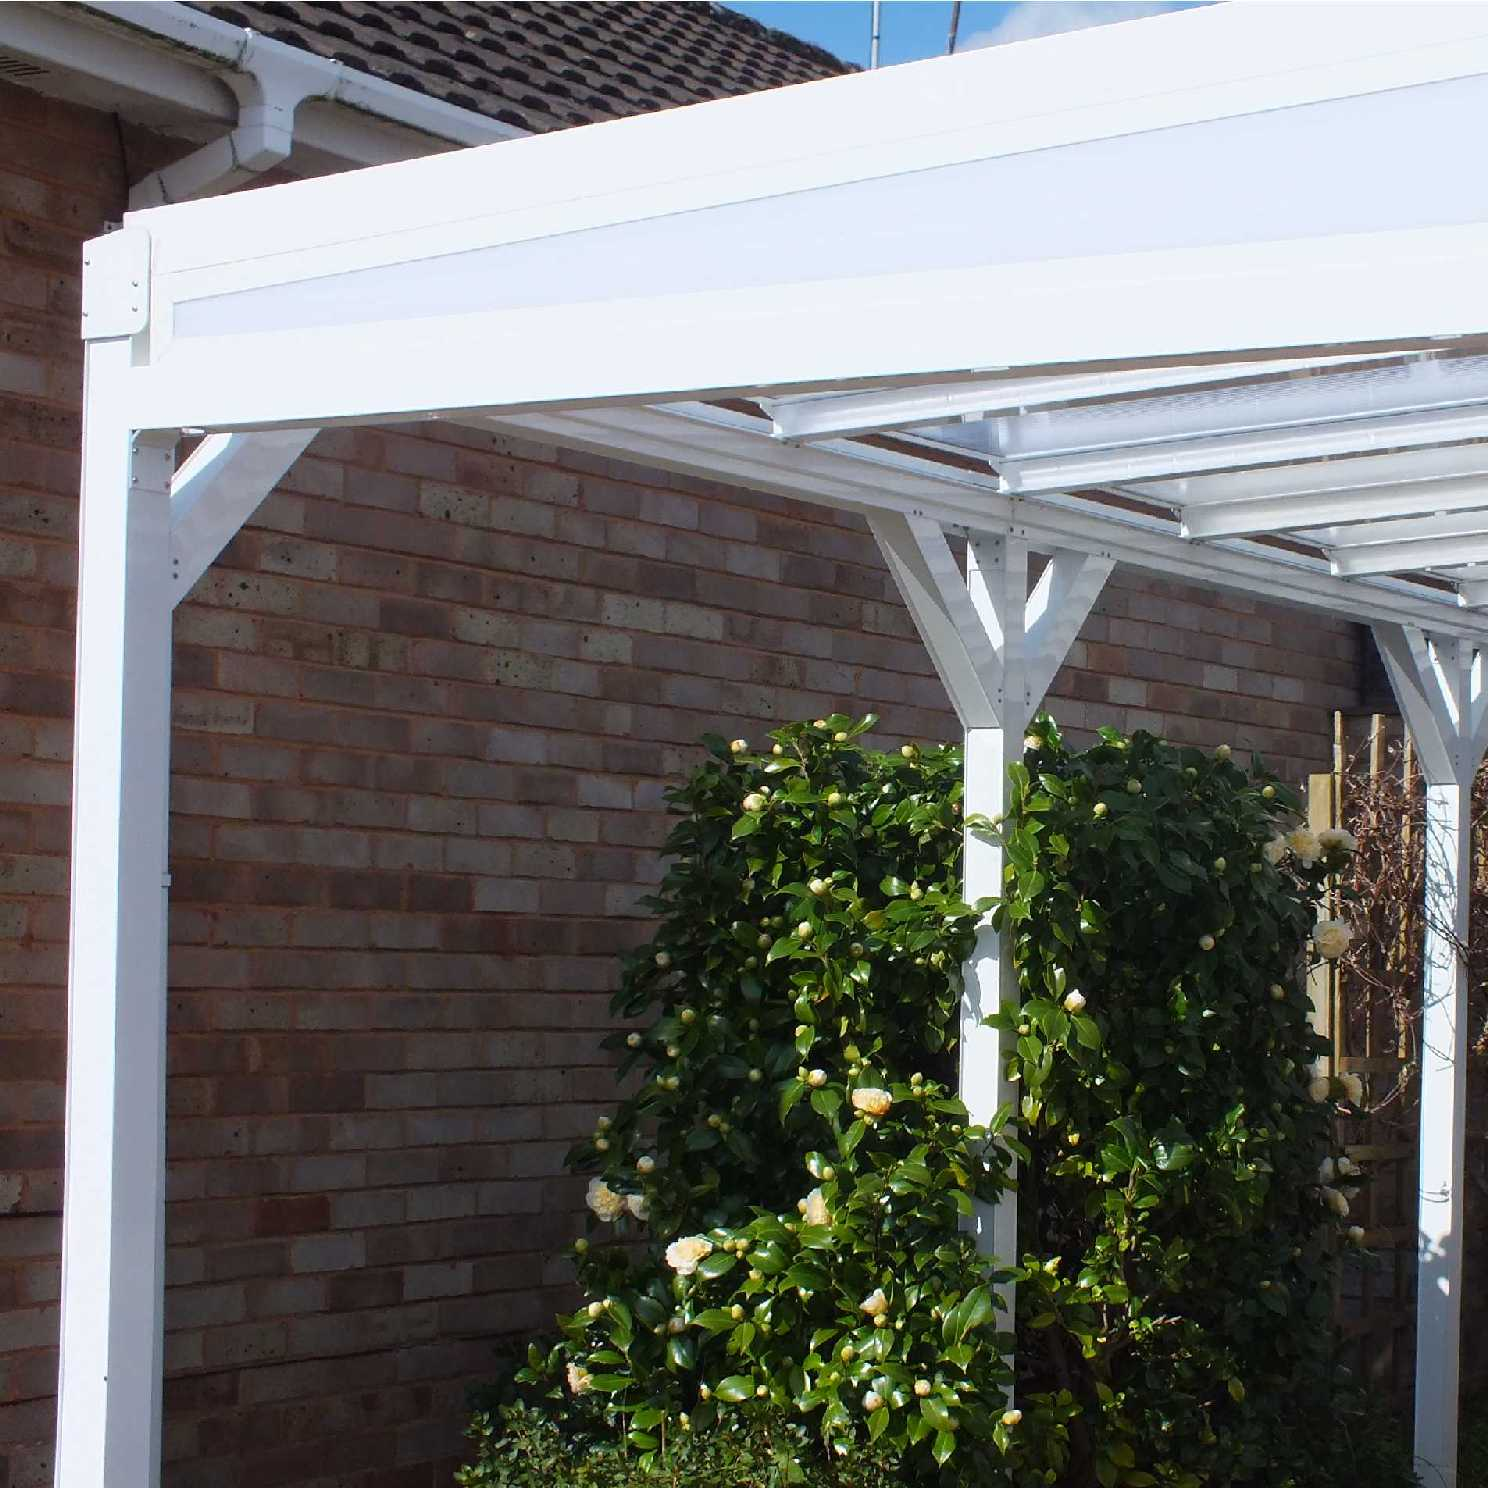 Omega Smart Lean-To Canopy with 16mm Polycarbonate Glazing - 6.0m (W) x 1.5m (P), (3) Supporting Posts from Omega Build